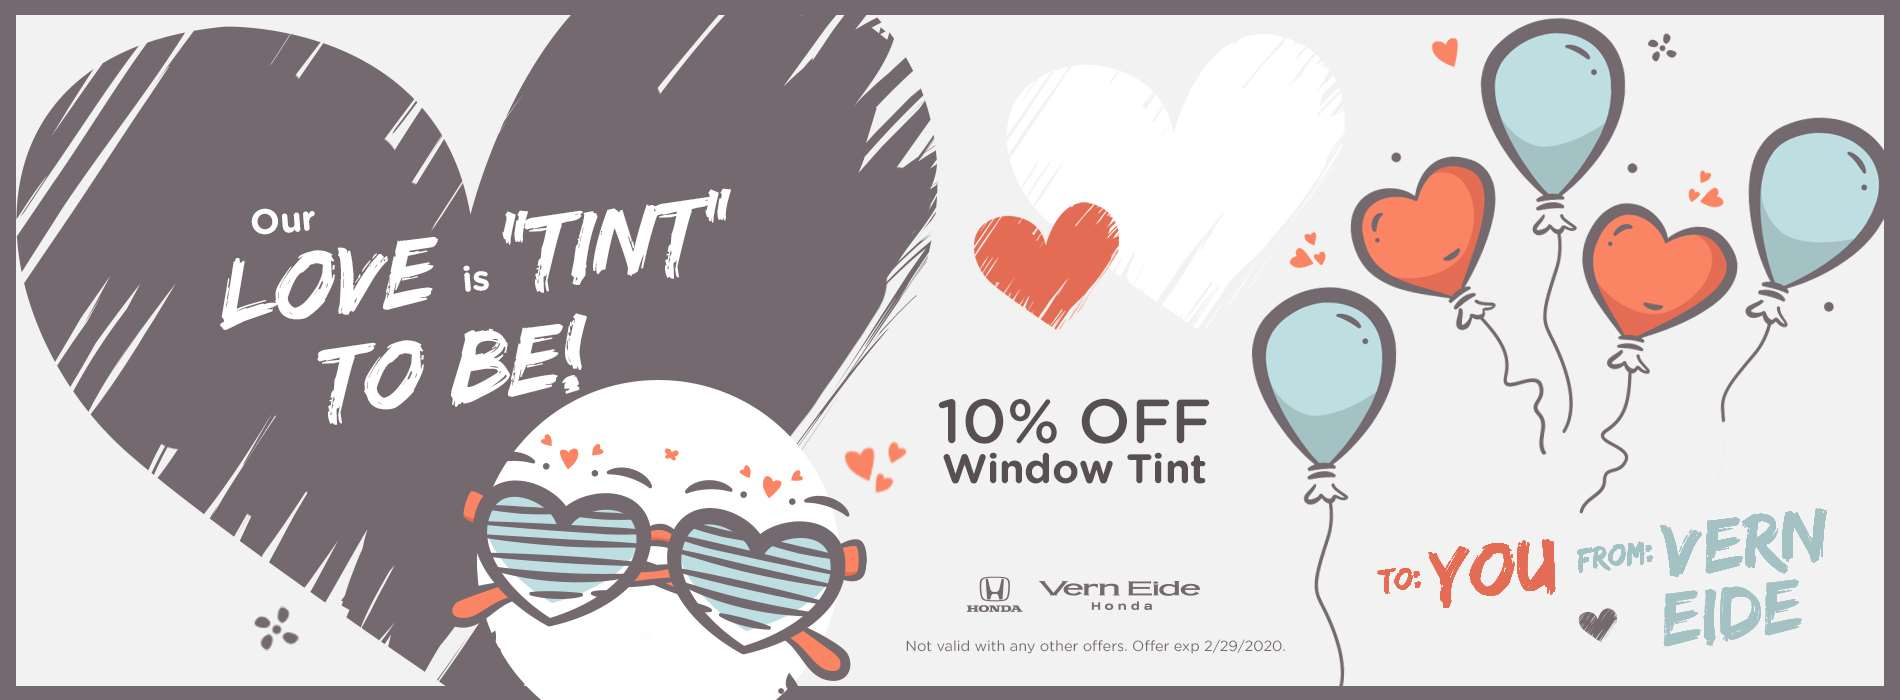 VHON - Window Tint Service - Feb 2020